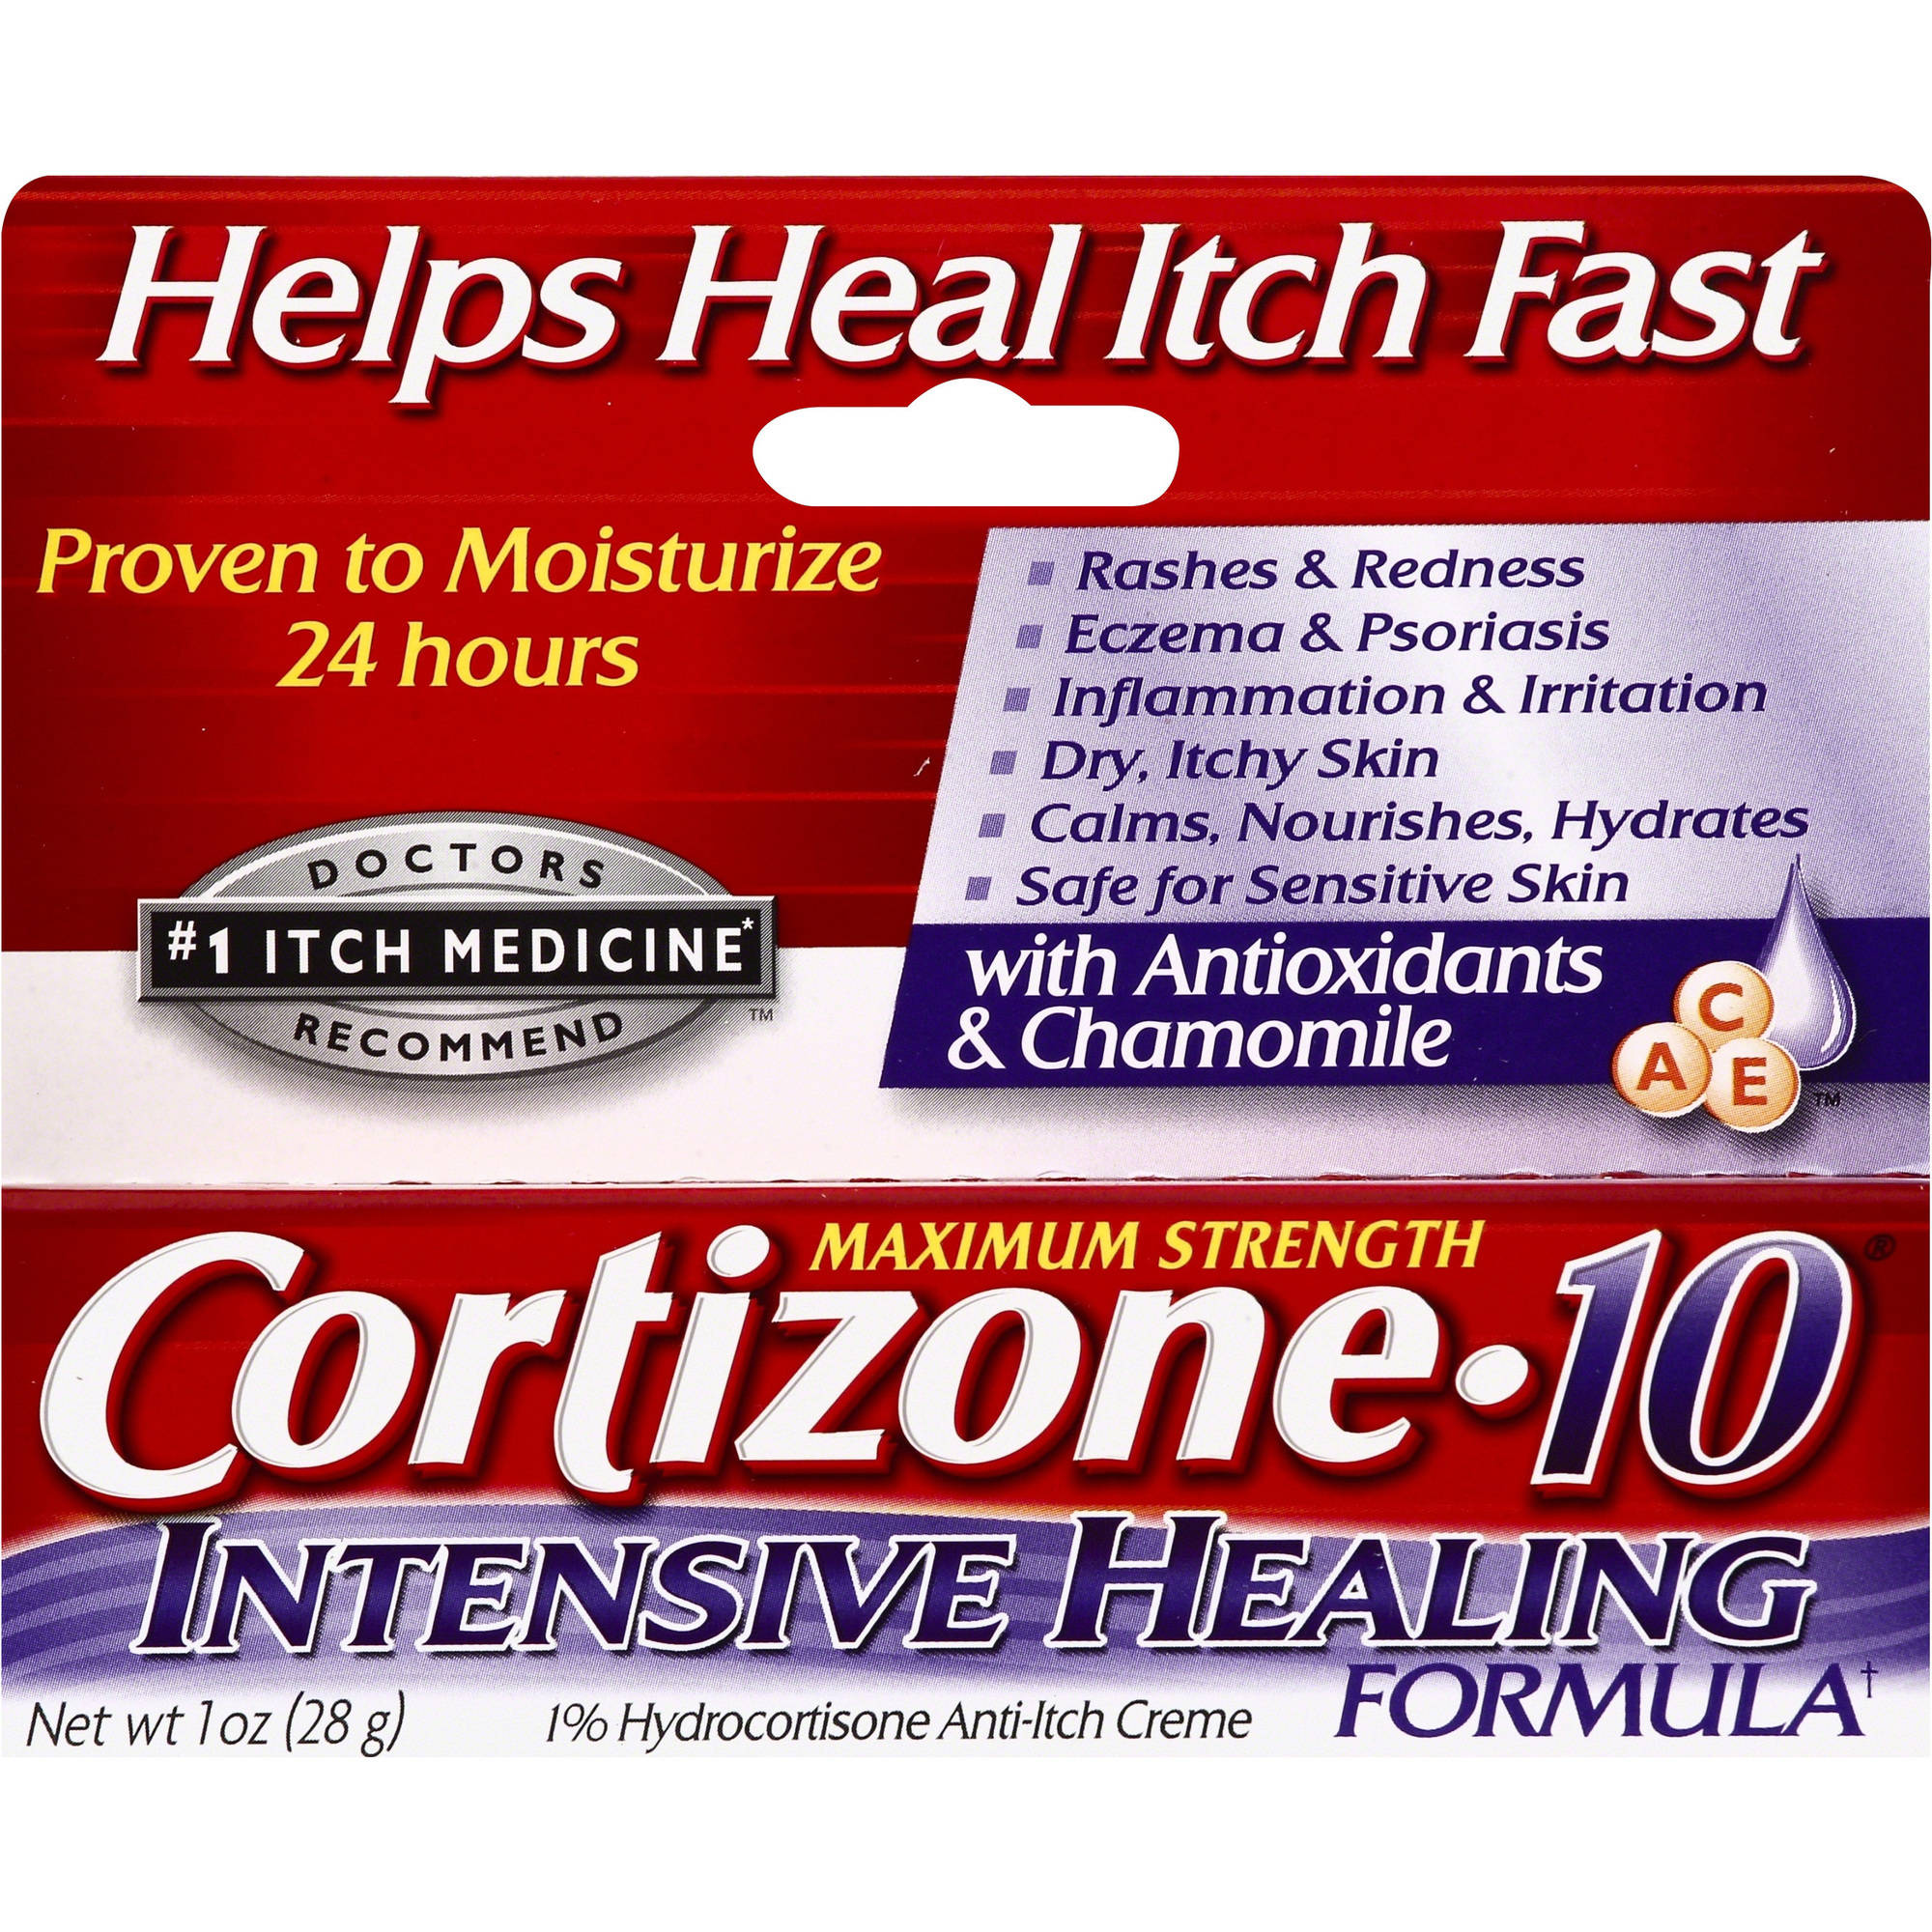 Cortizone 10 Intensive Healing Anti-Itch Creme, 1 oz